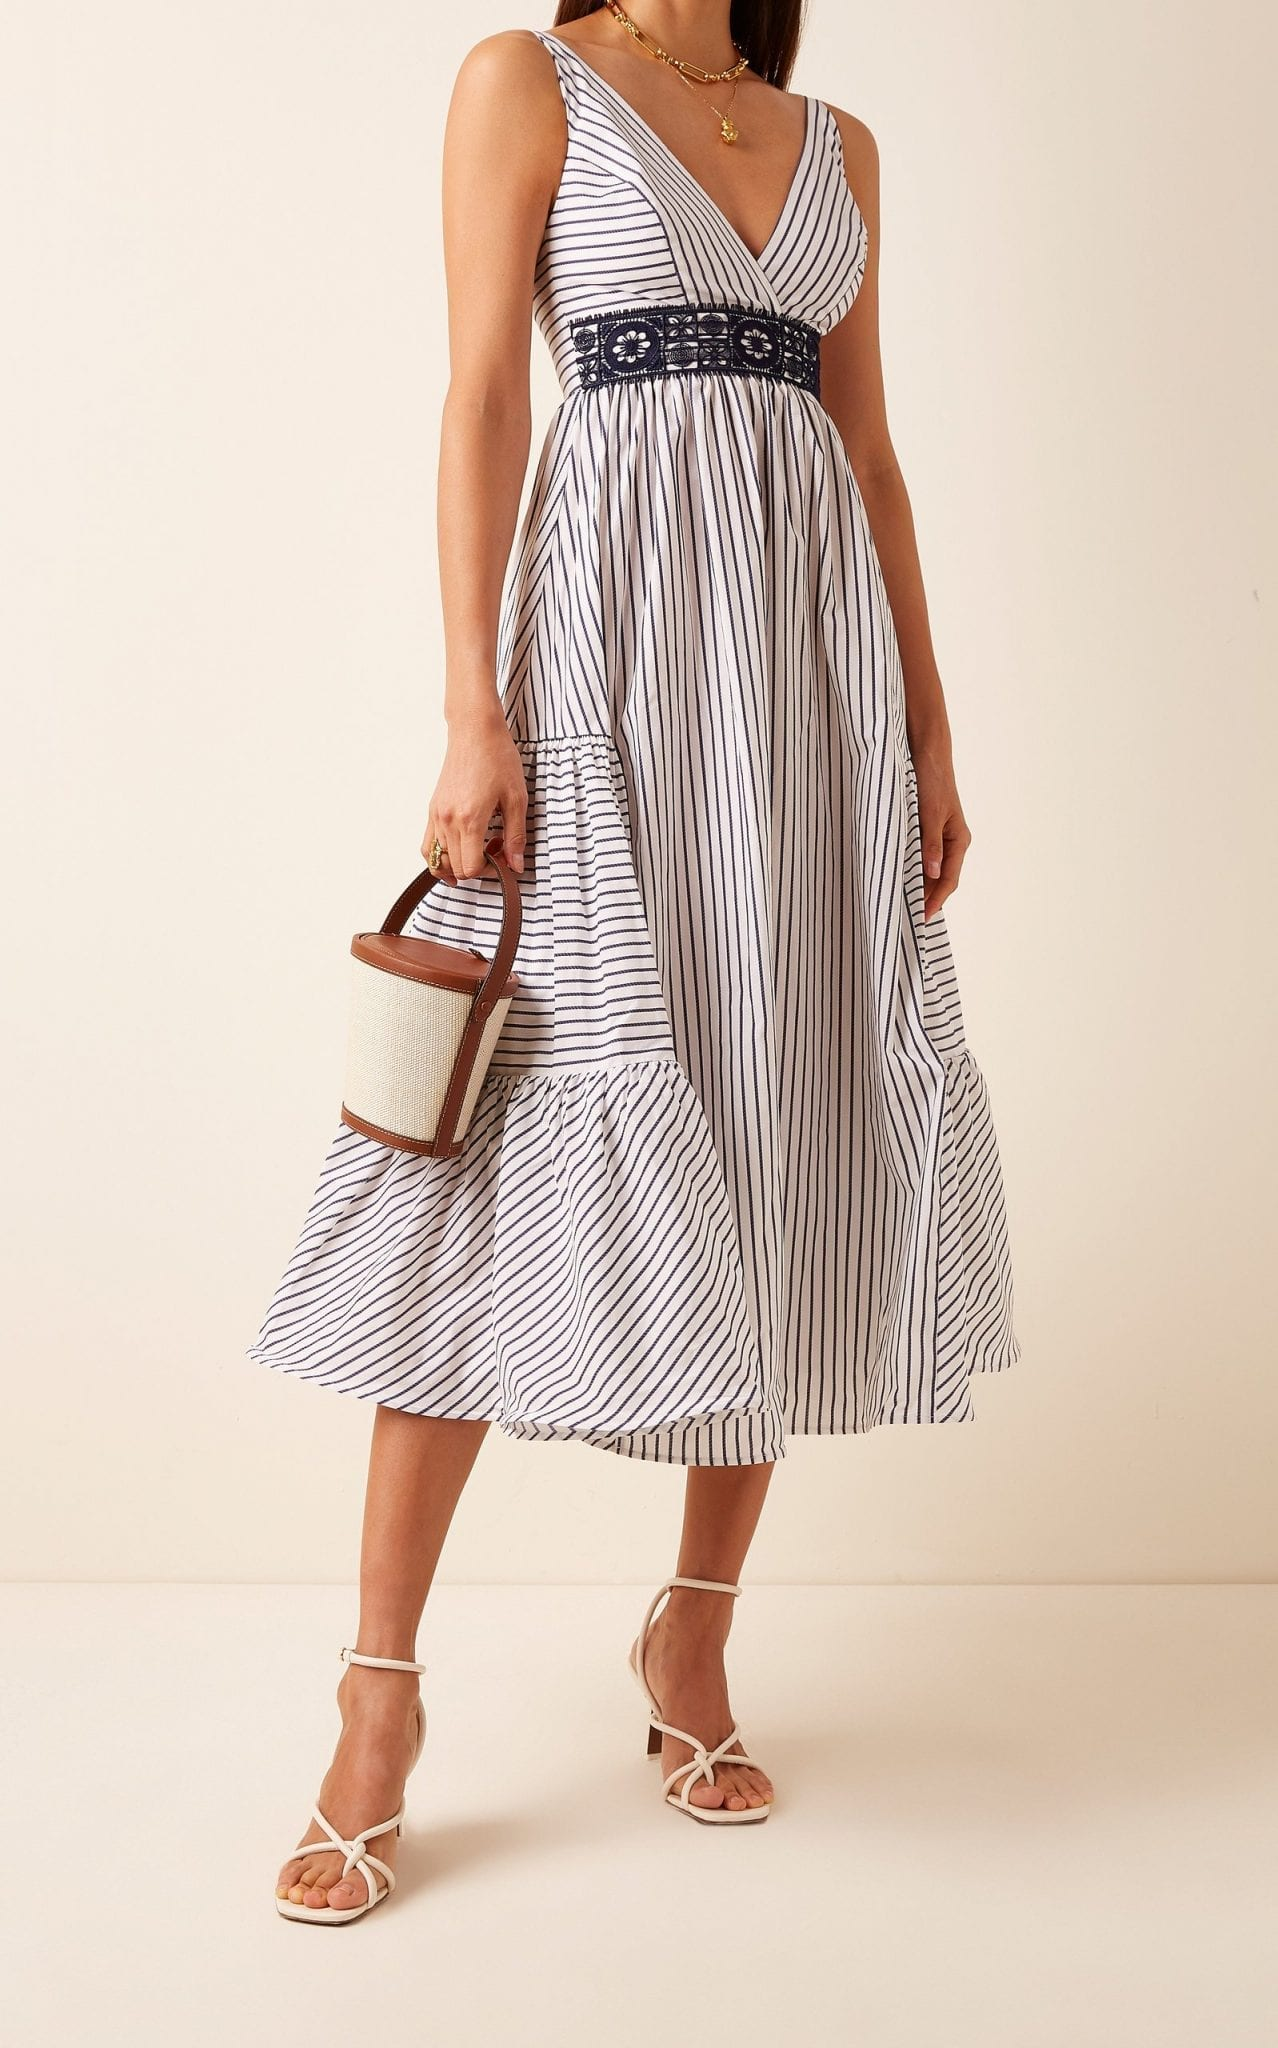 SILVIA TCHERASSI Canazei Striped Cotton Poplin Midi Dress